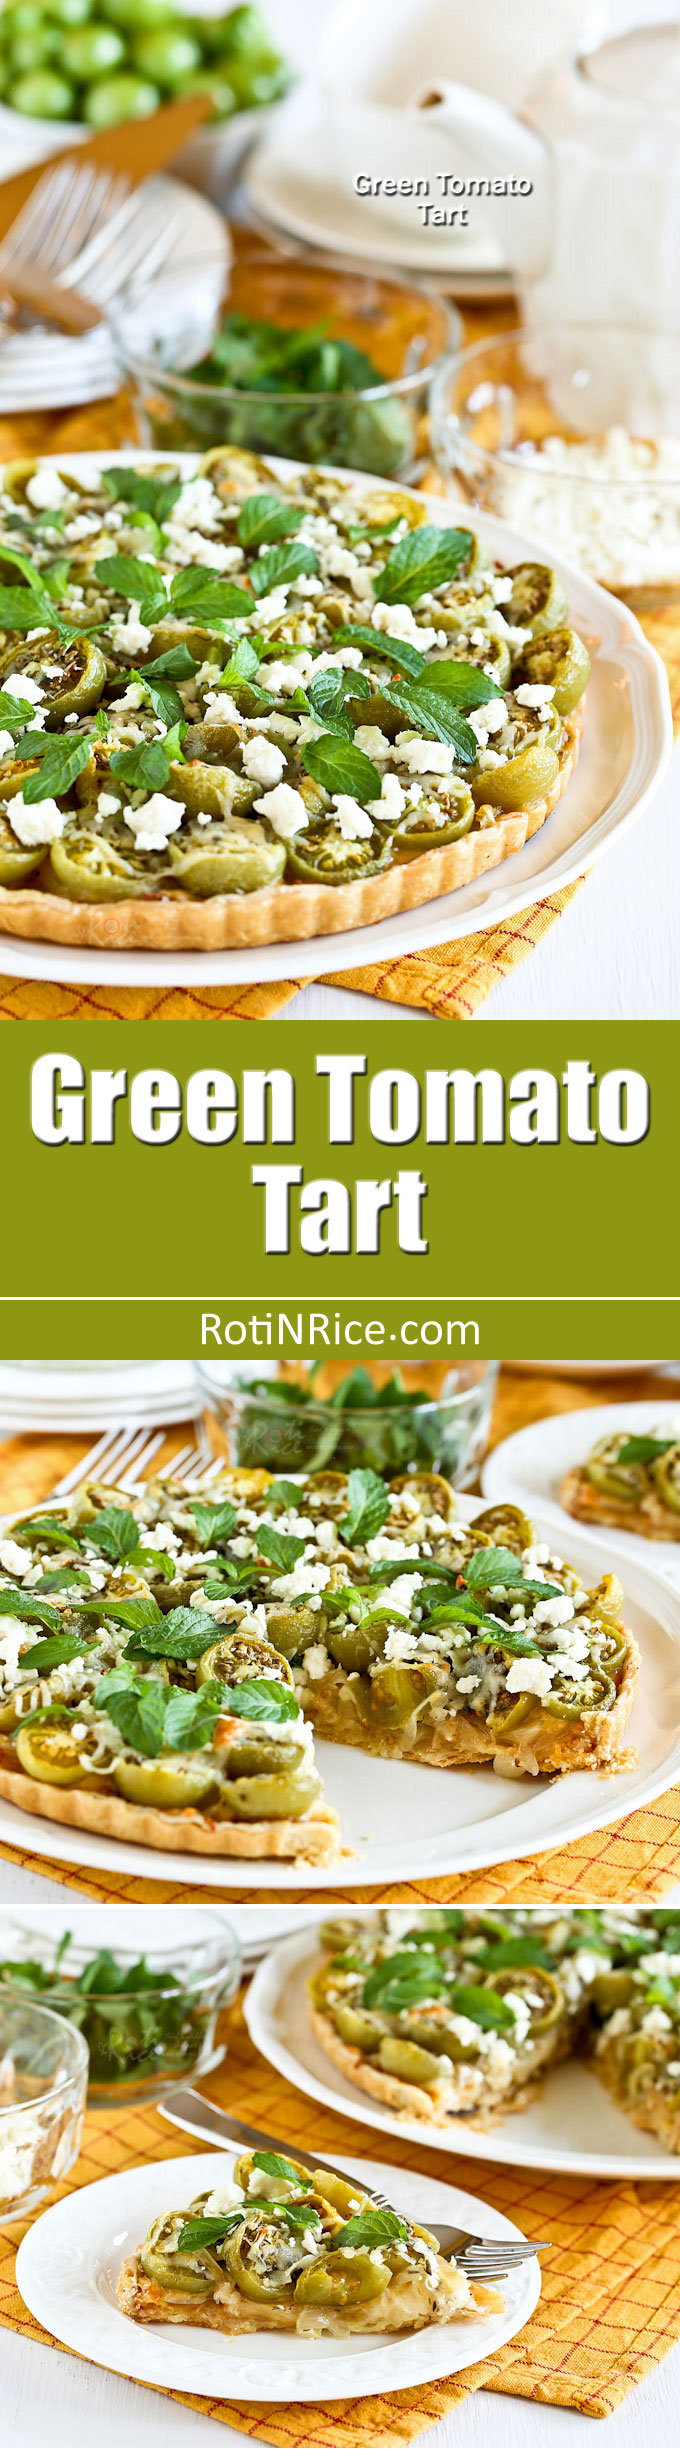 A beautiful Green Tomato Tart layered with cheese, caramelized onions, green tomatoes, feta, and mint leaves. Perfect for the weekend or holiday table. | RotiNRice.com